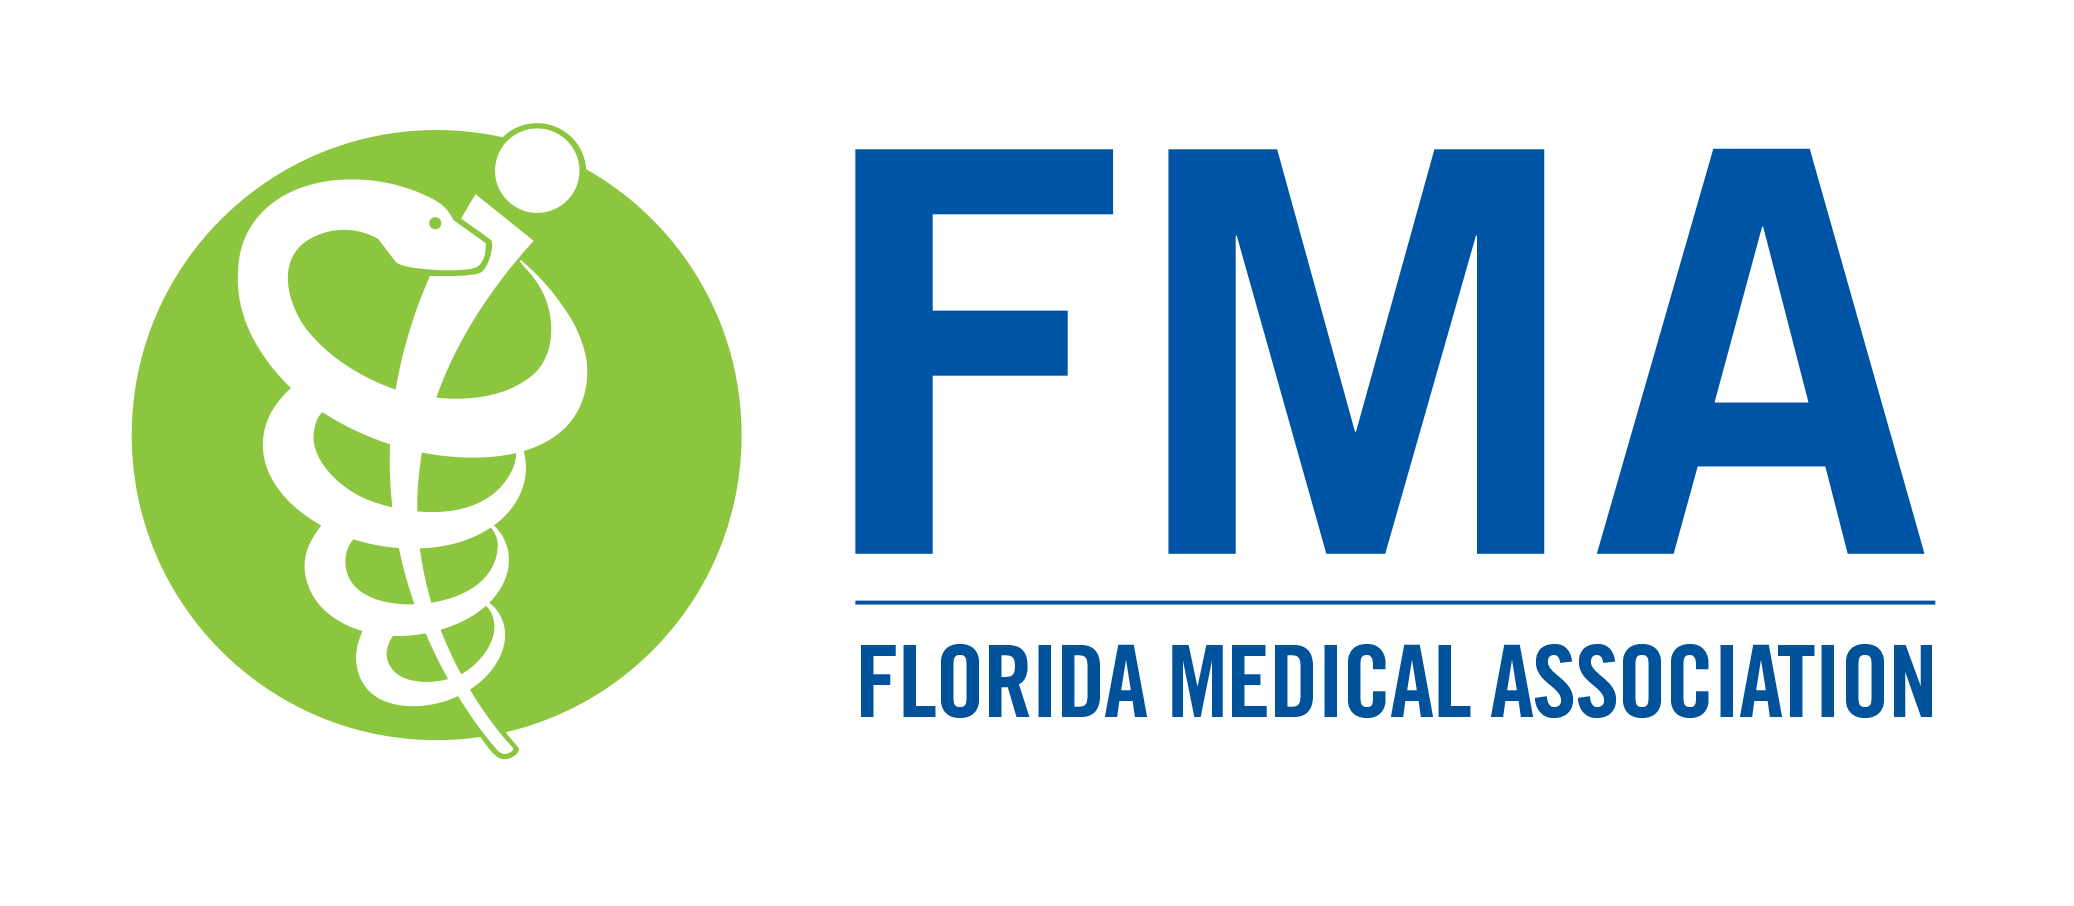 HealthLynked Announces Participation in the 2019 Florida Medical Association Conference and Exhibition in Orlando, Florida